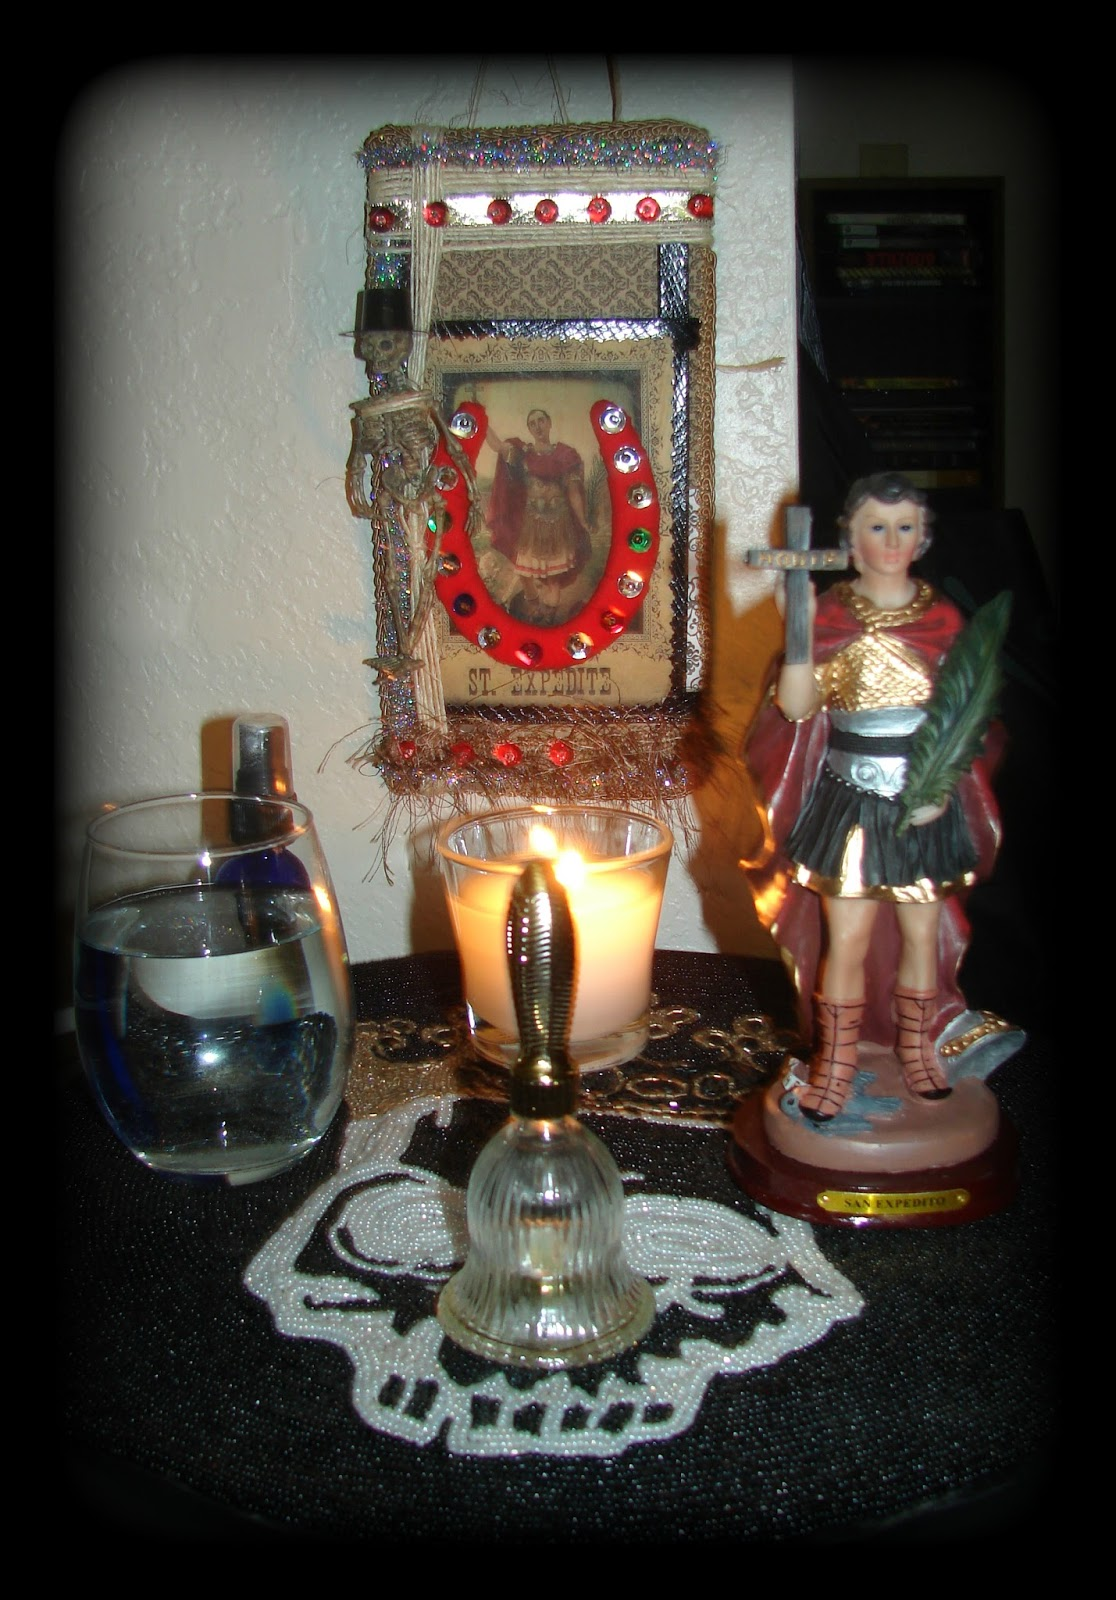 Invoke St  Expedite for Quick Results